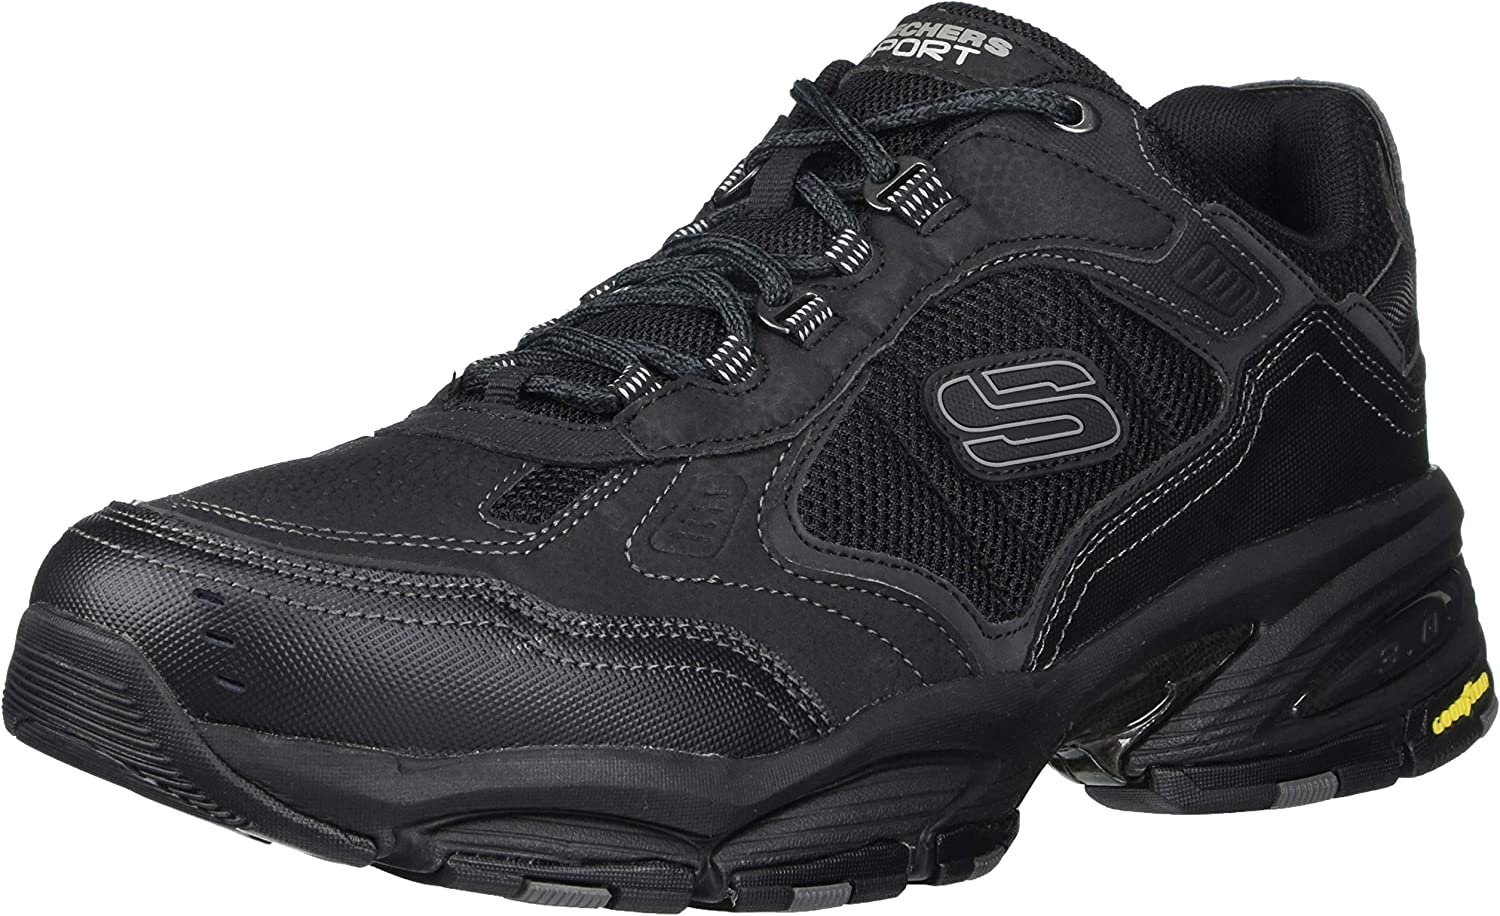 Goodyear Rubber Outsole Oxford